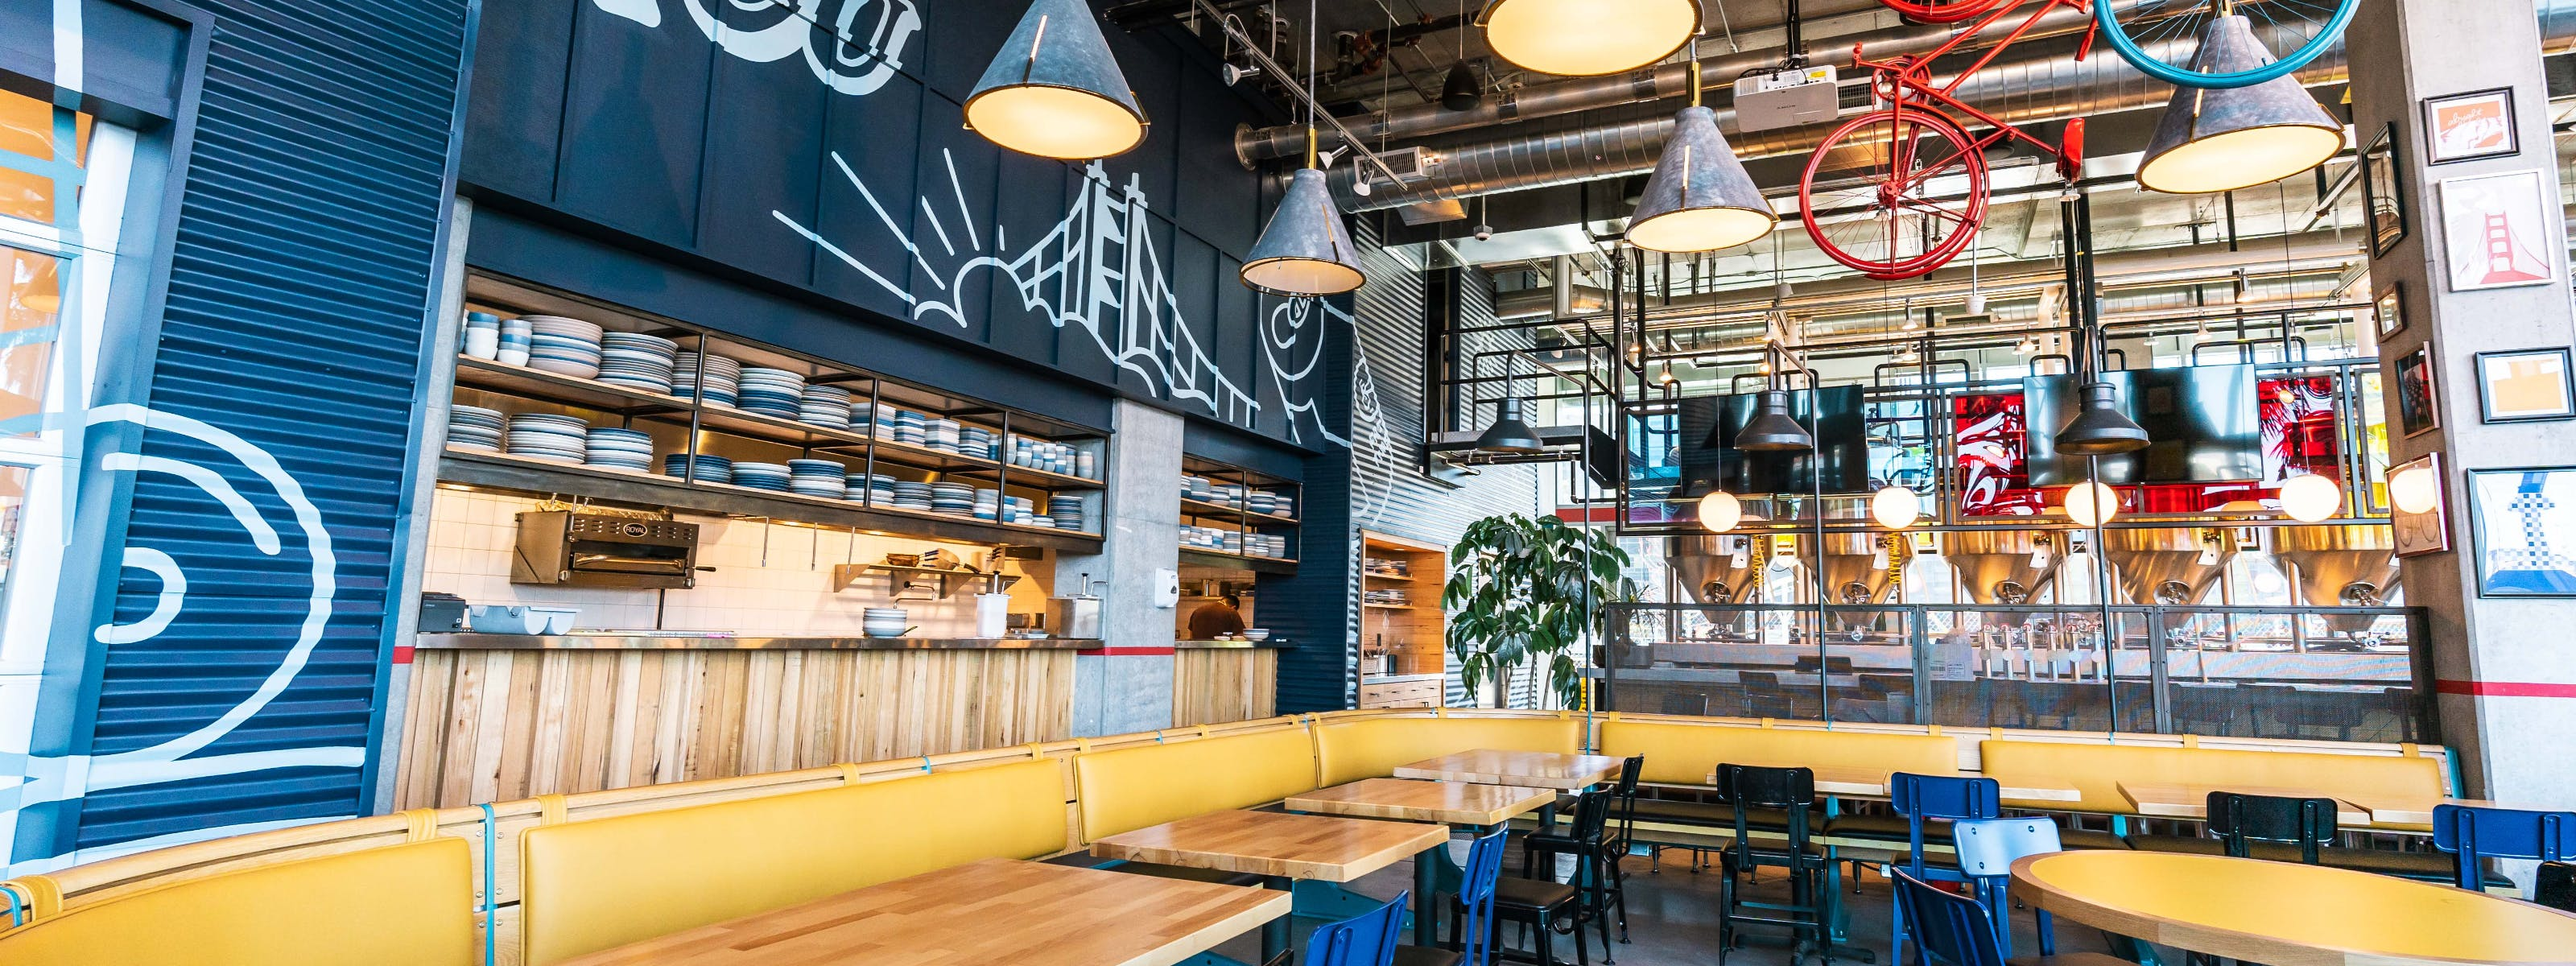 5 New Things To Do & Eat In San Francisco This Week - San Francisco - The Infatuation